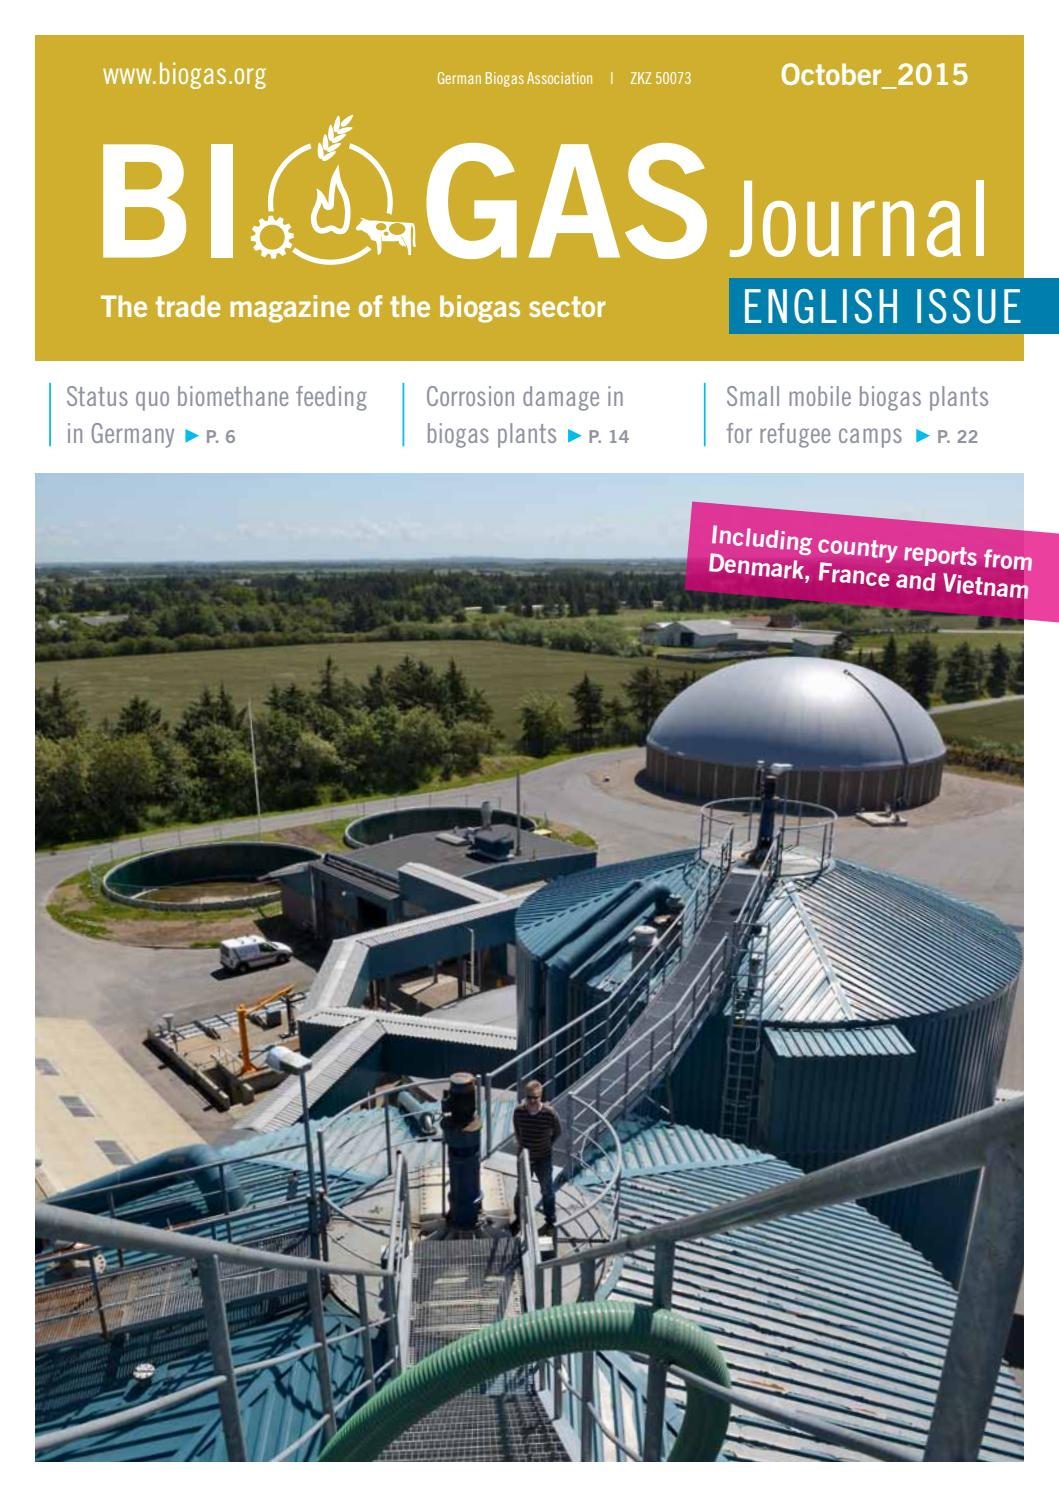 Biogas Journal English Issue October 2015 by Fachverband Biogas e V